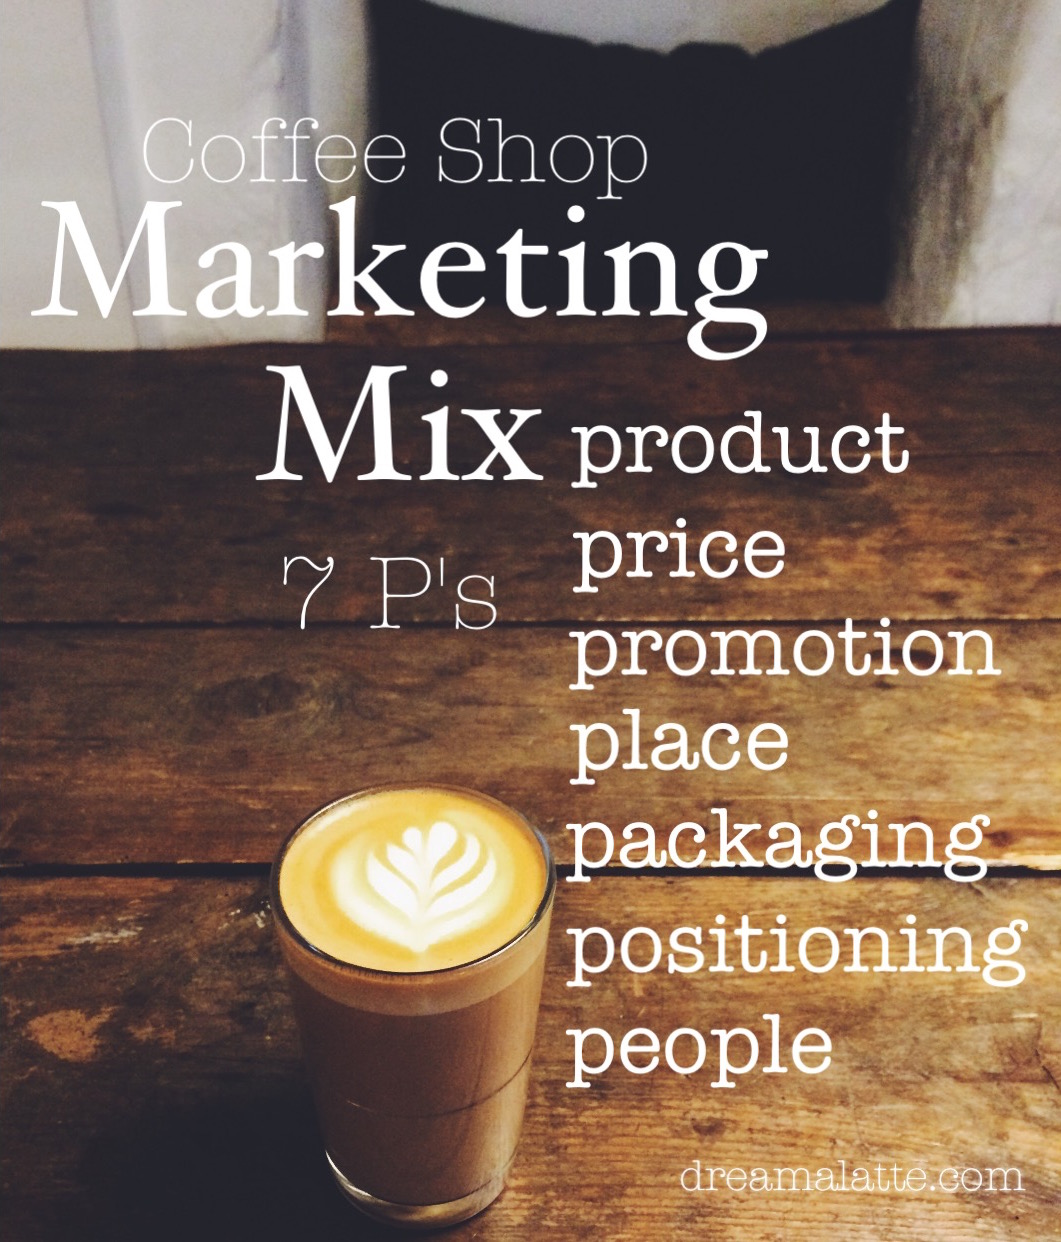 cafe marketing plan Do you want to boost coffee sales if yes, here is a sample coffee shop  marketing plan template + killer marketing ideas/strategies to attract/retain  customers.